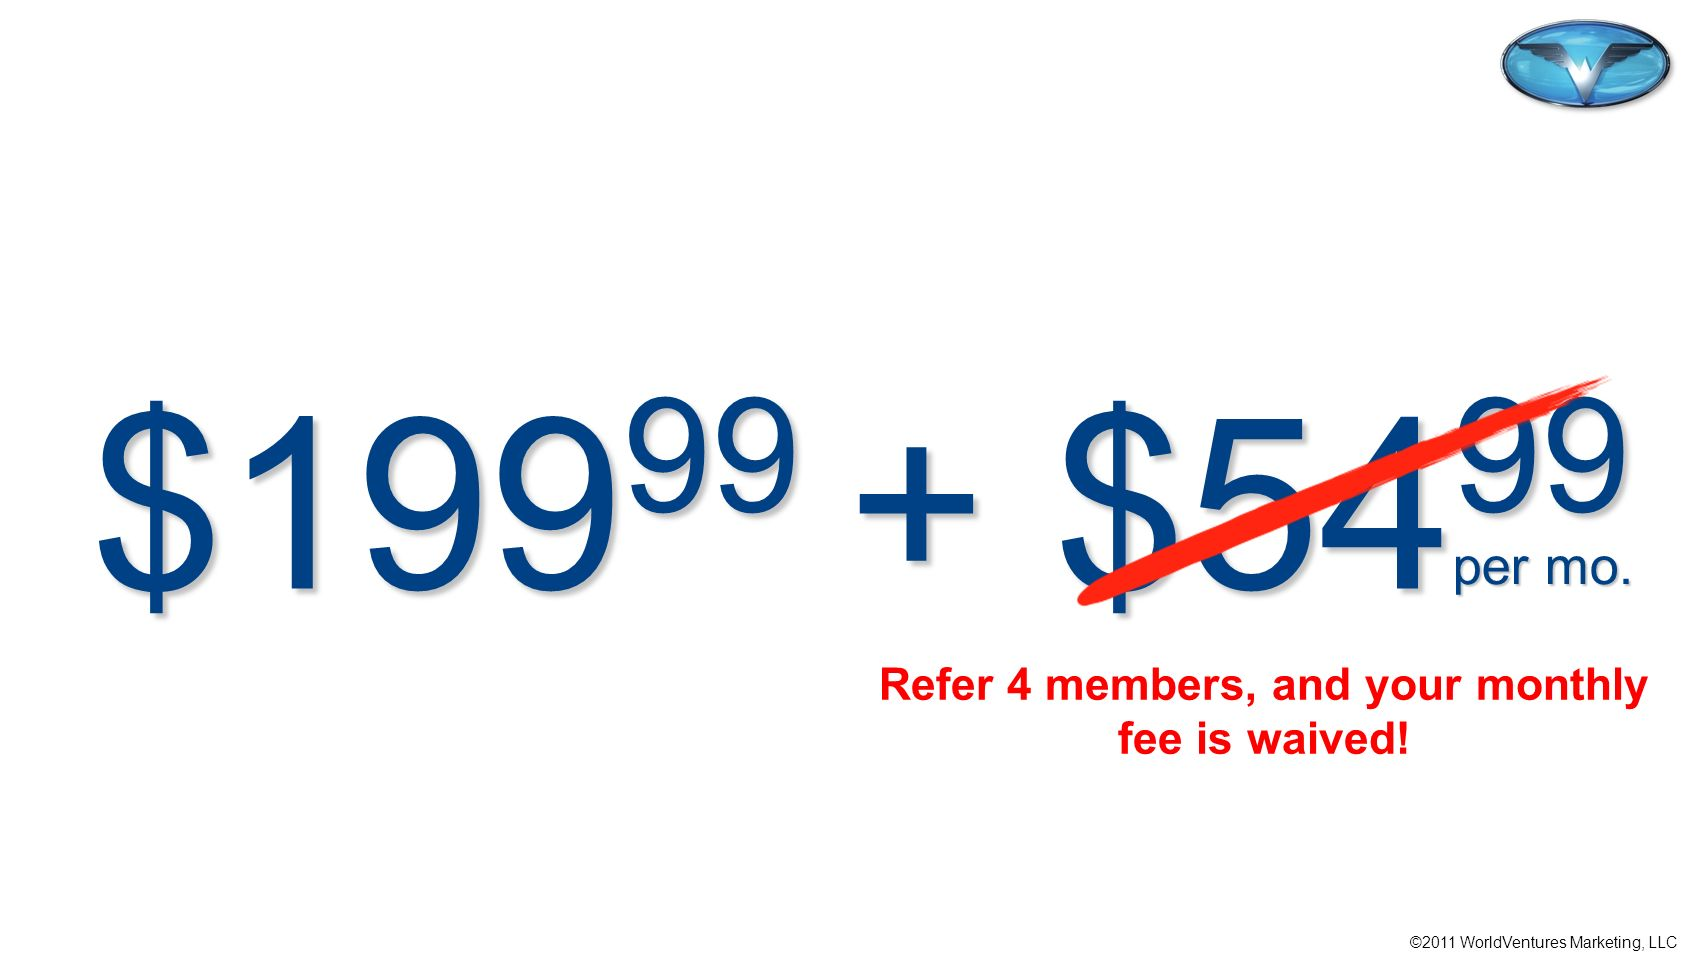 Refer 4 members, and your monthly fee is waived!